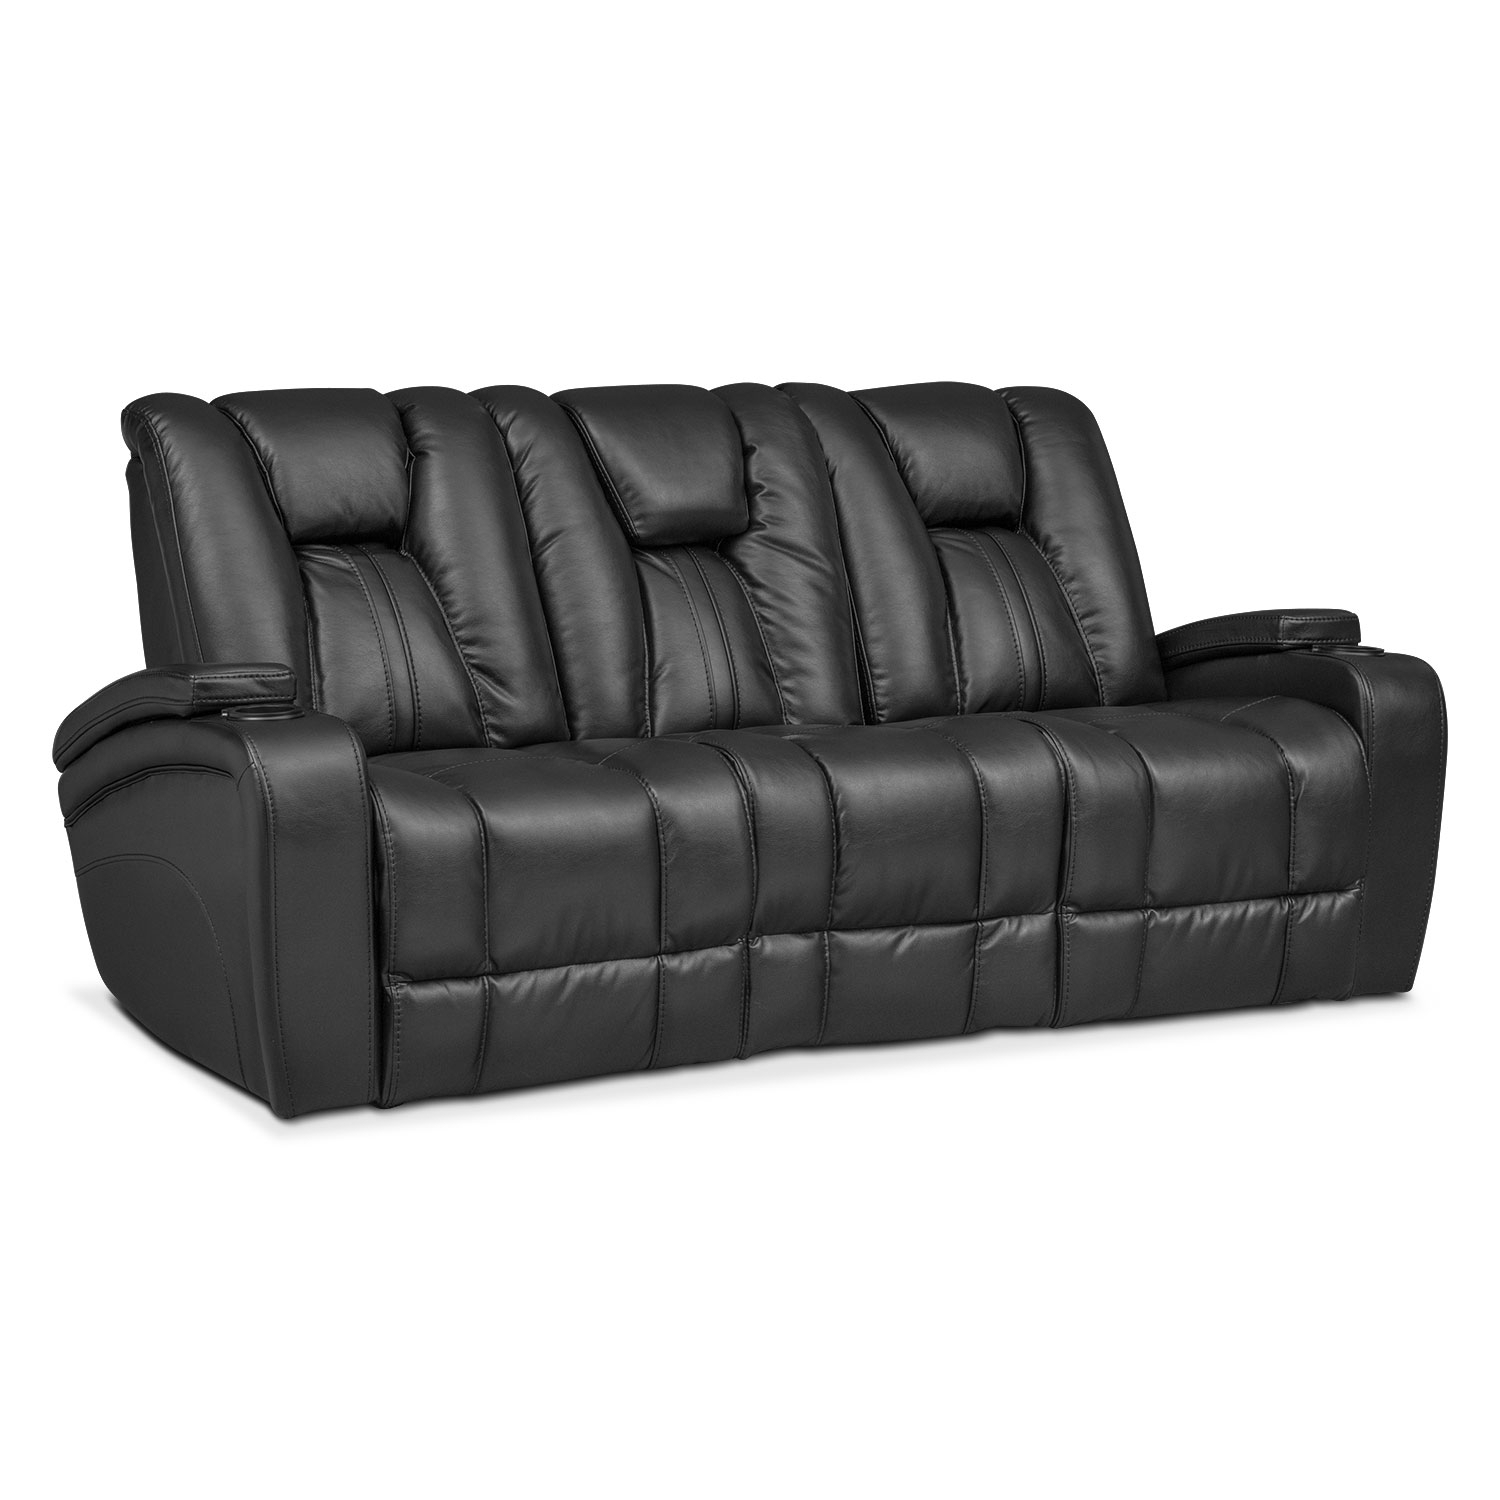 Sofas And Couches | Living Room Seating | Value City Furniture And for Marcus Chocolate 6 Piece Sectionals With Power Headrest and Usb (Image 23 of 30)